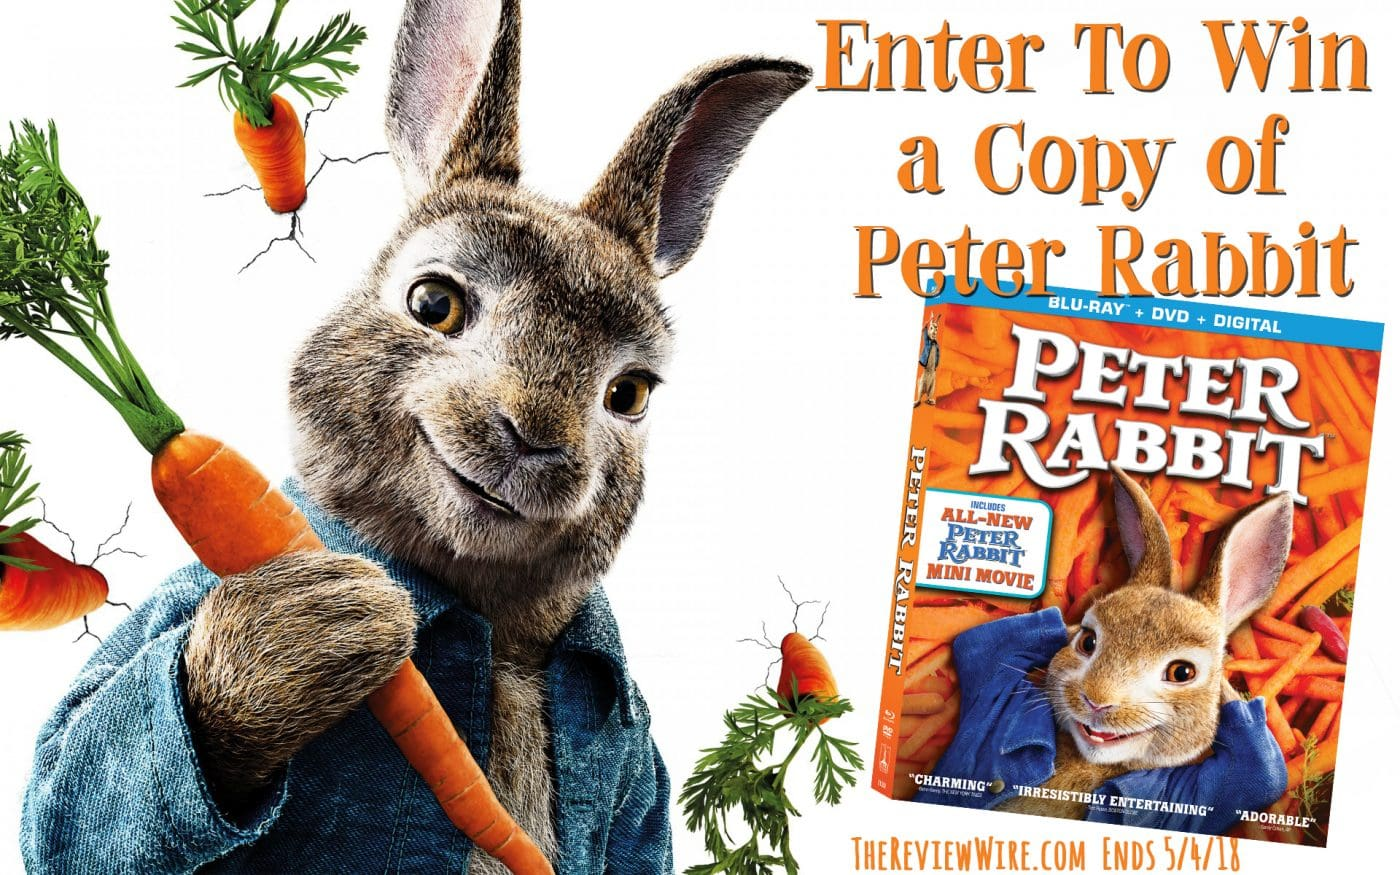 Enter to win a Blu-ray copy of the #PeterRabbitMovie! #Giveaway ends 5/4